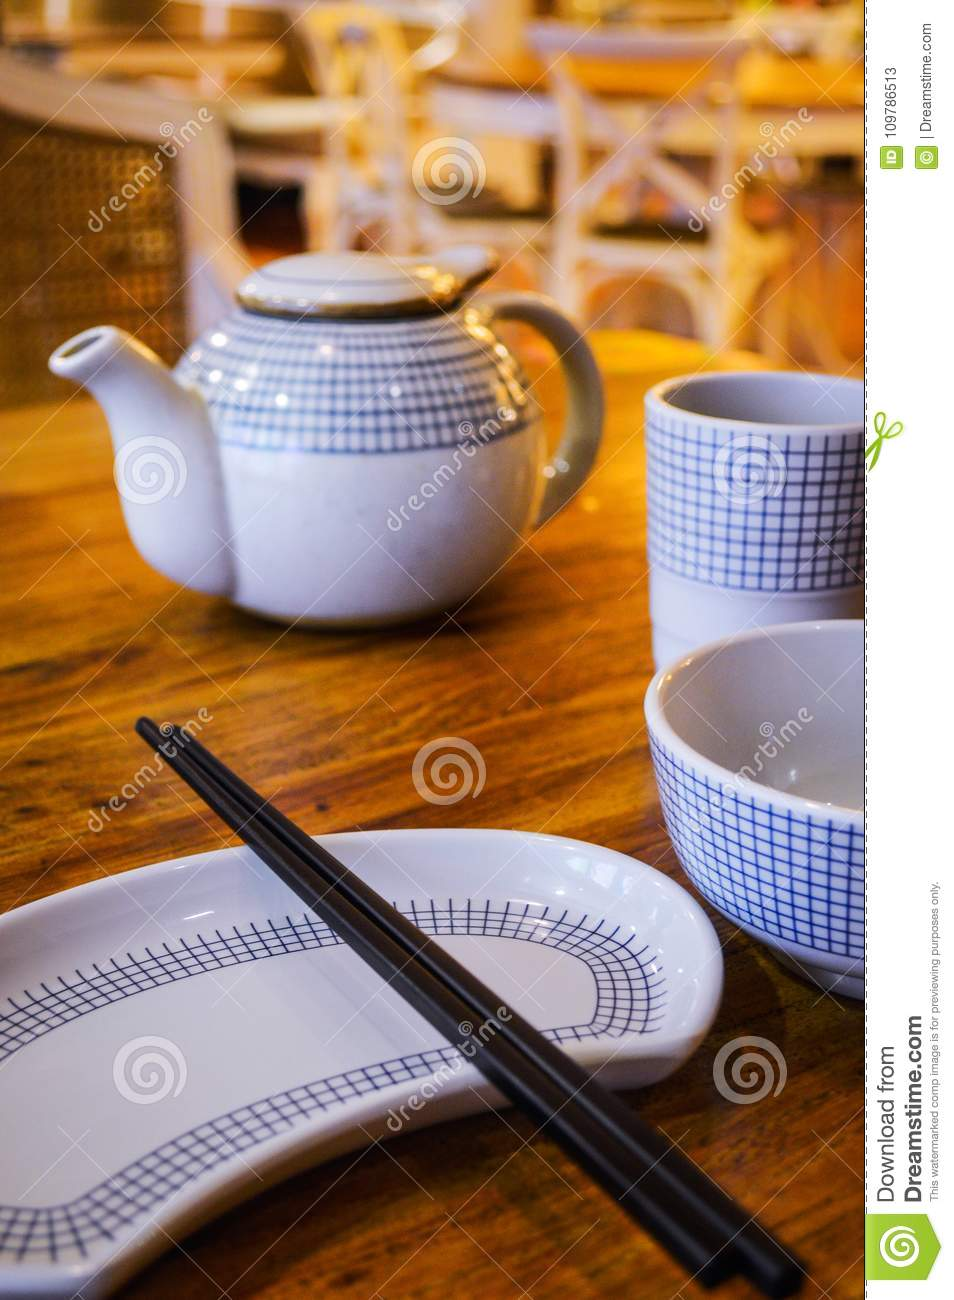 China local Restaurant Table Setting with Chopsticks, Plate,Teapot and Bowl.